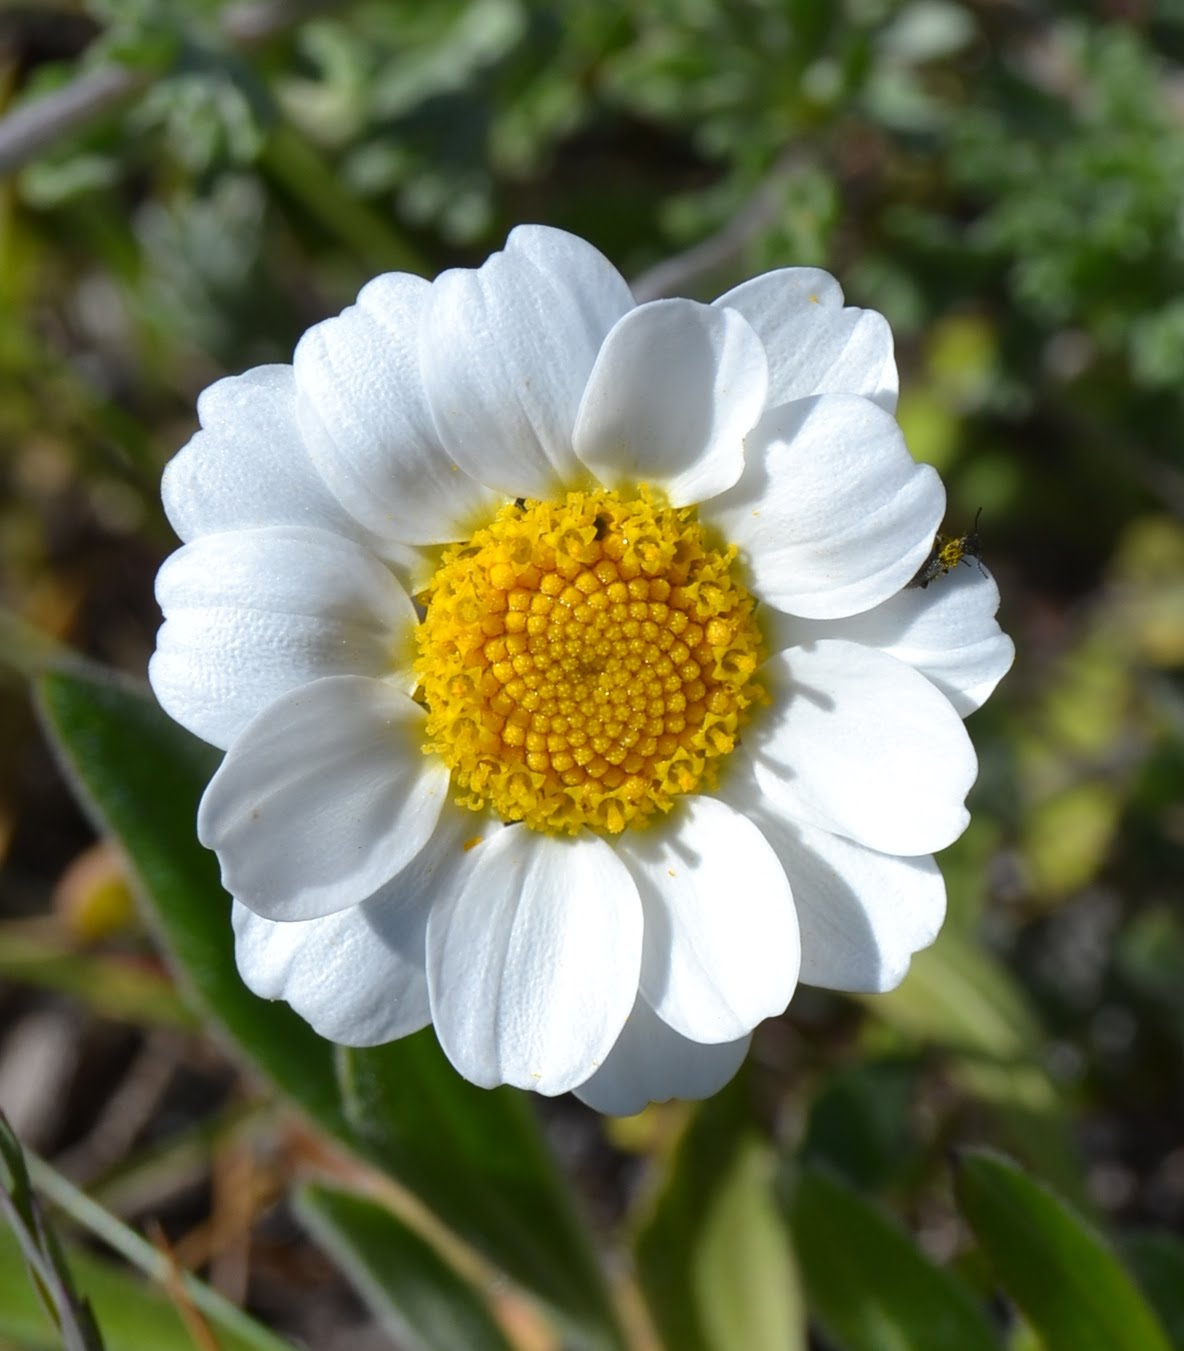 Anthemis maritima